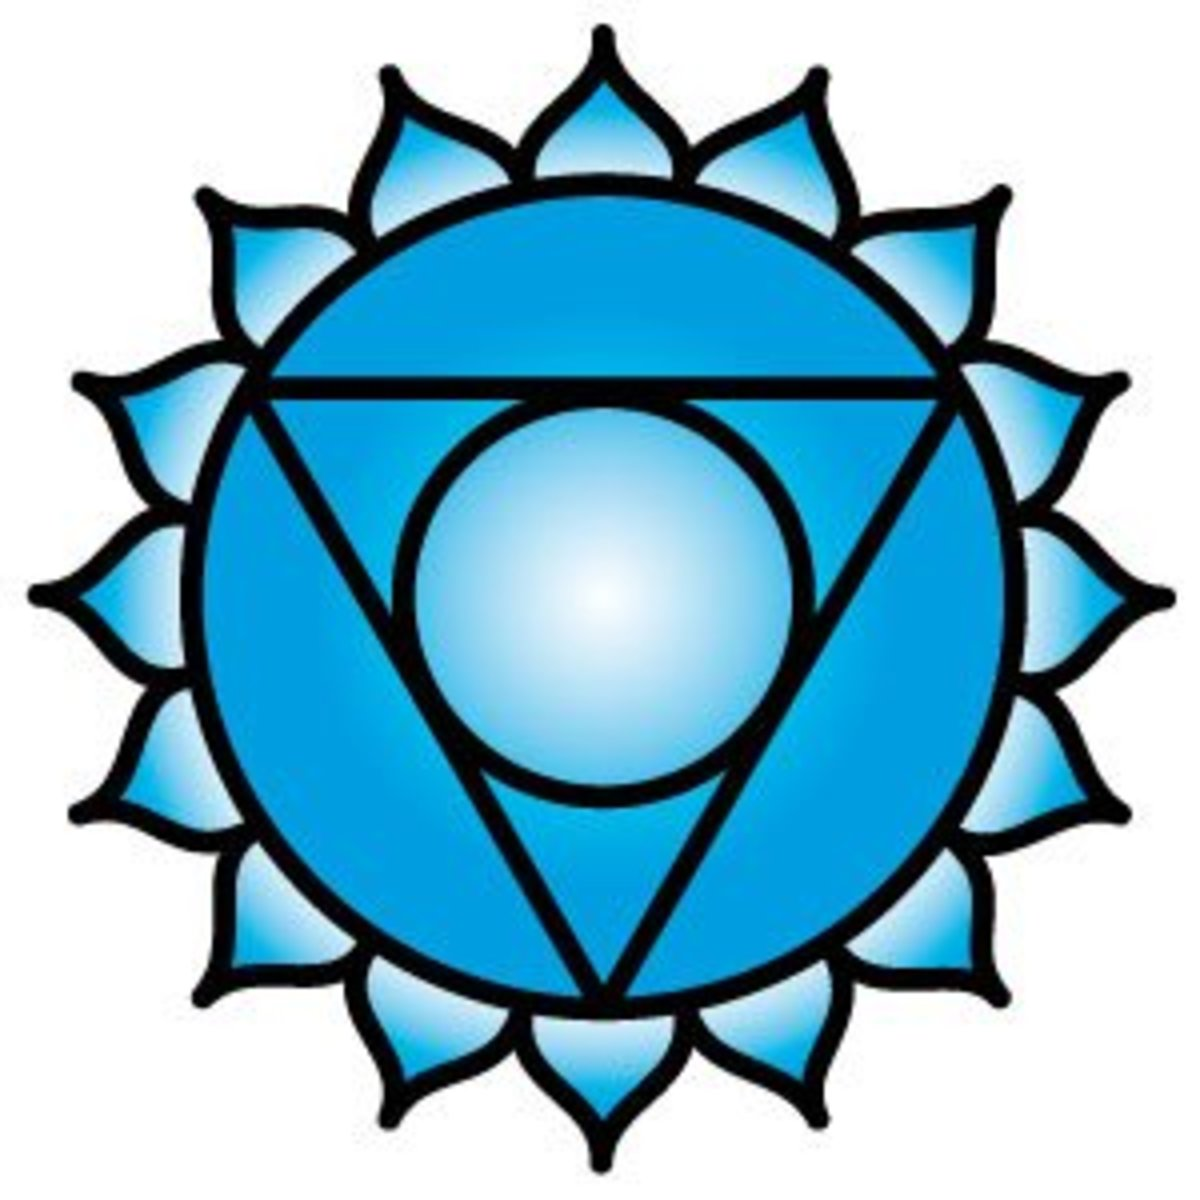 The throat chakra is related to the color blue.